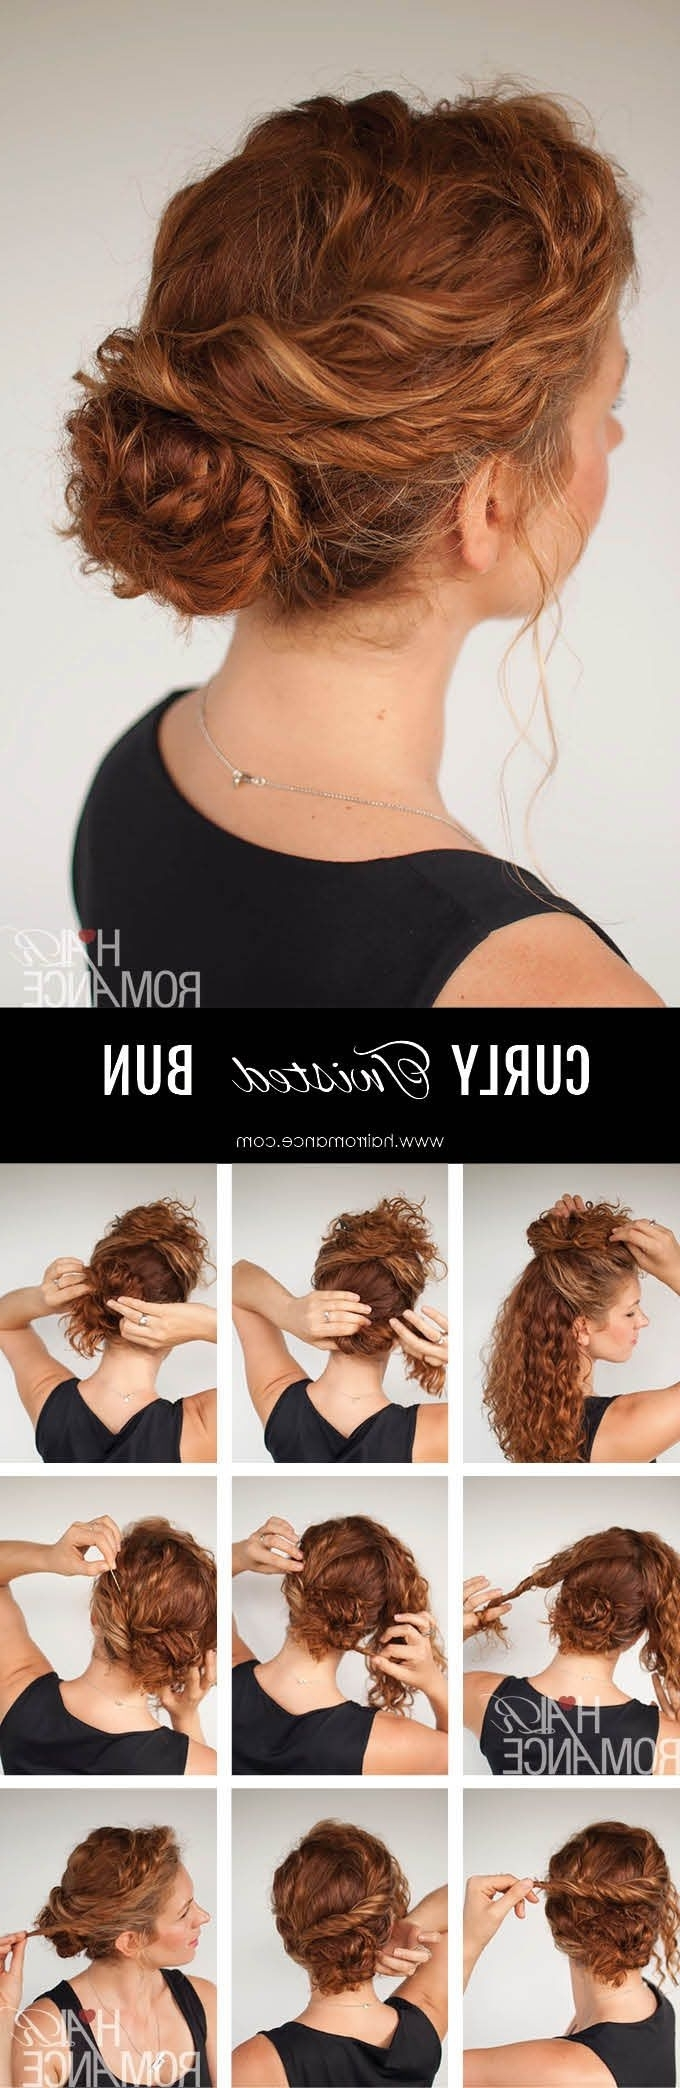 41 Best Curly Hairstyles Images On Pinterest | Curly Hairstyles With Updo Hairstyles For Super Curly Hair (View 2 of 15)